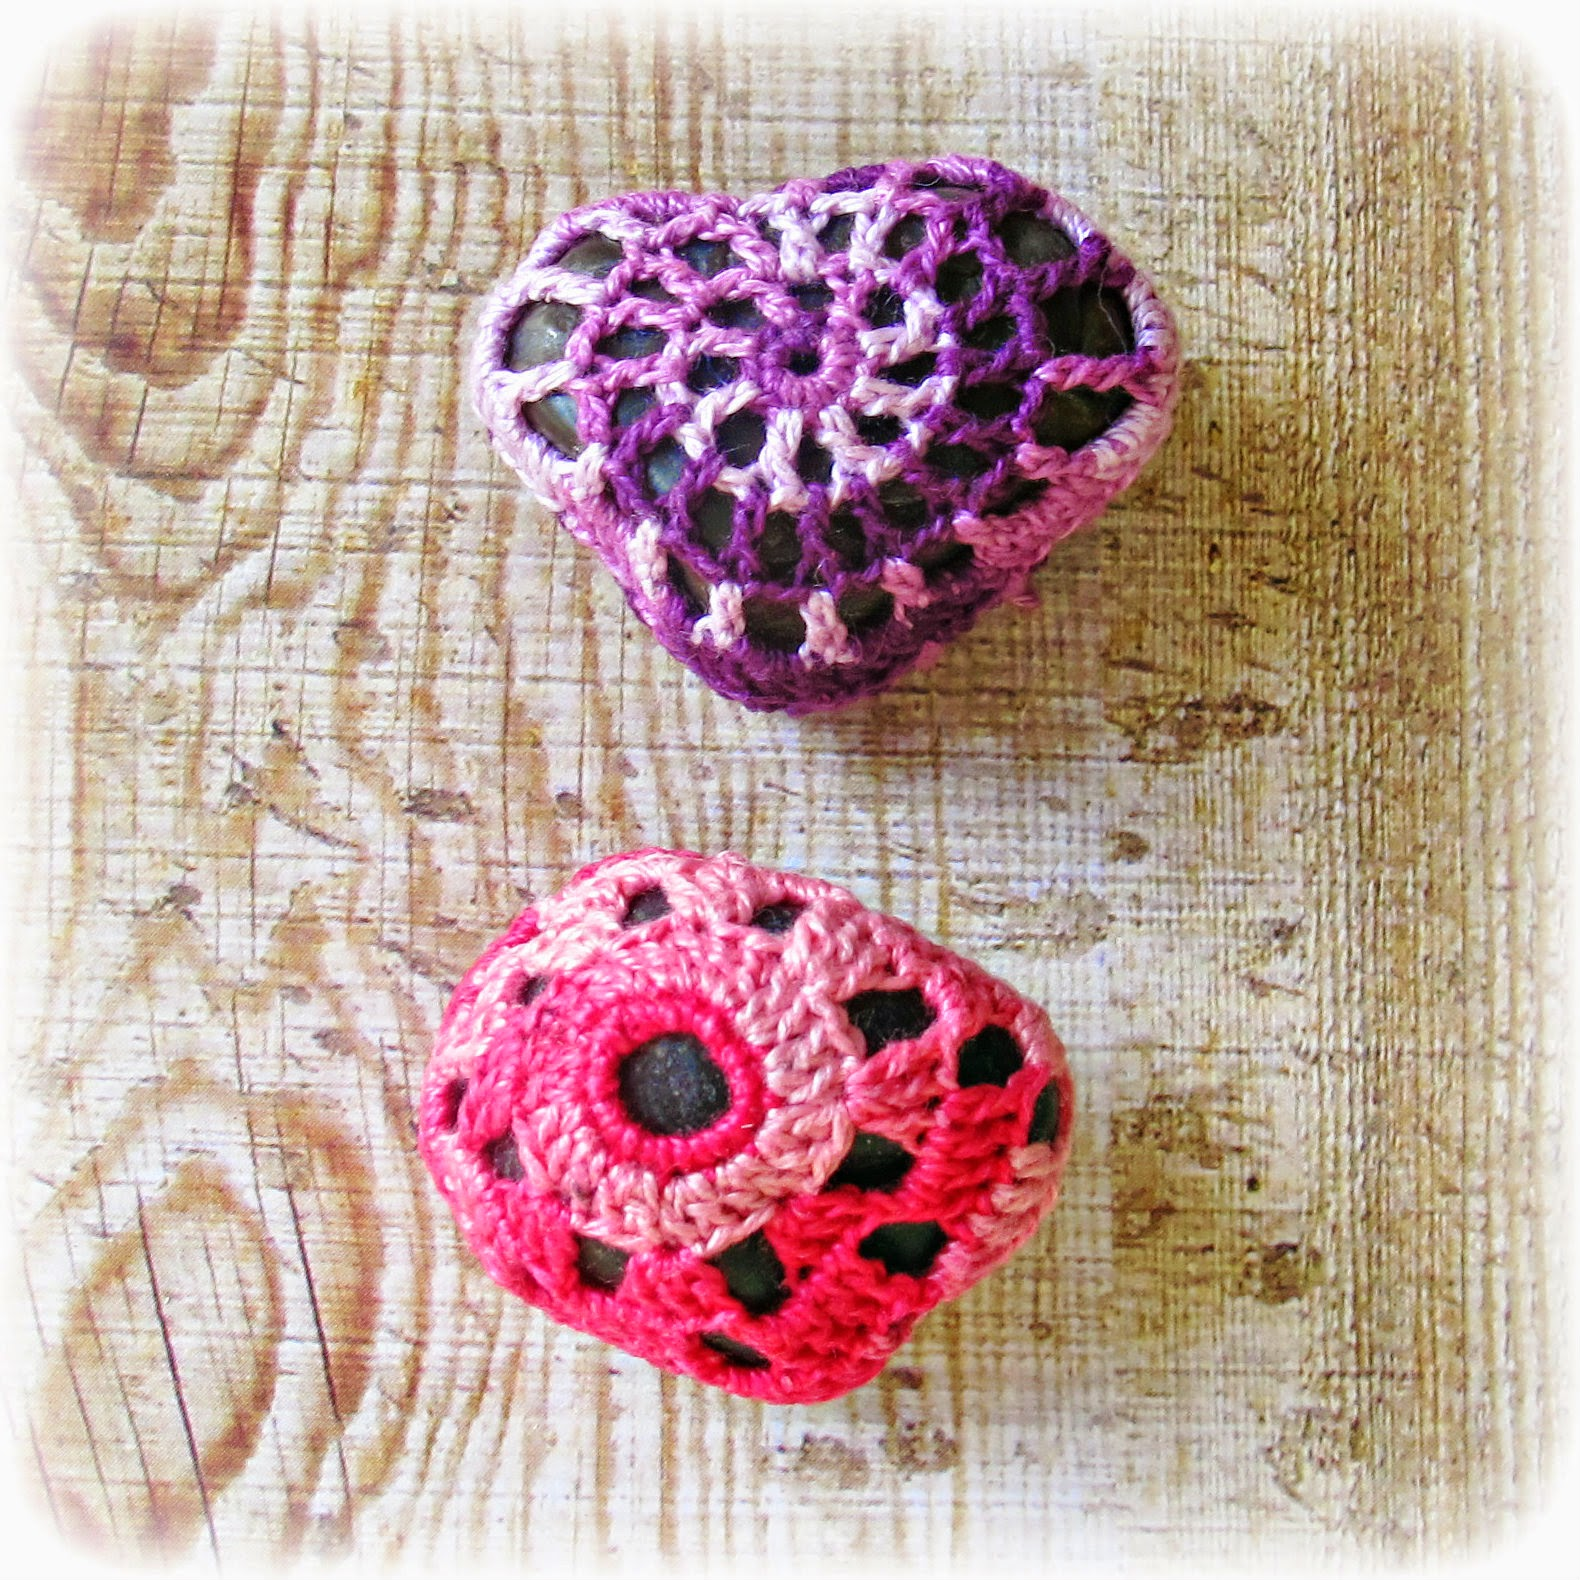 image crochet pebbles cozy crocheted stones pink purple domum vindemia rock